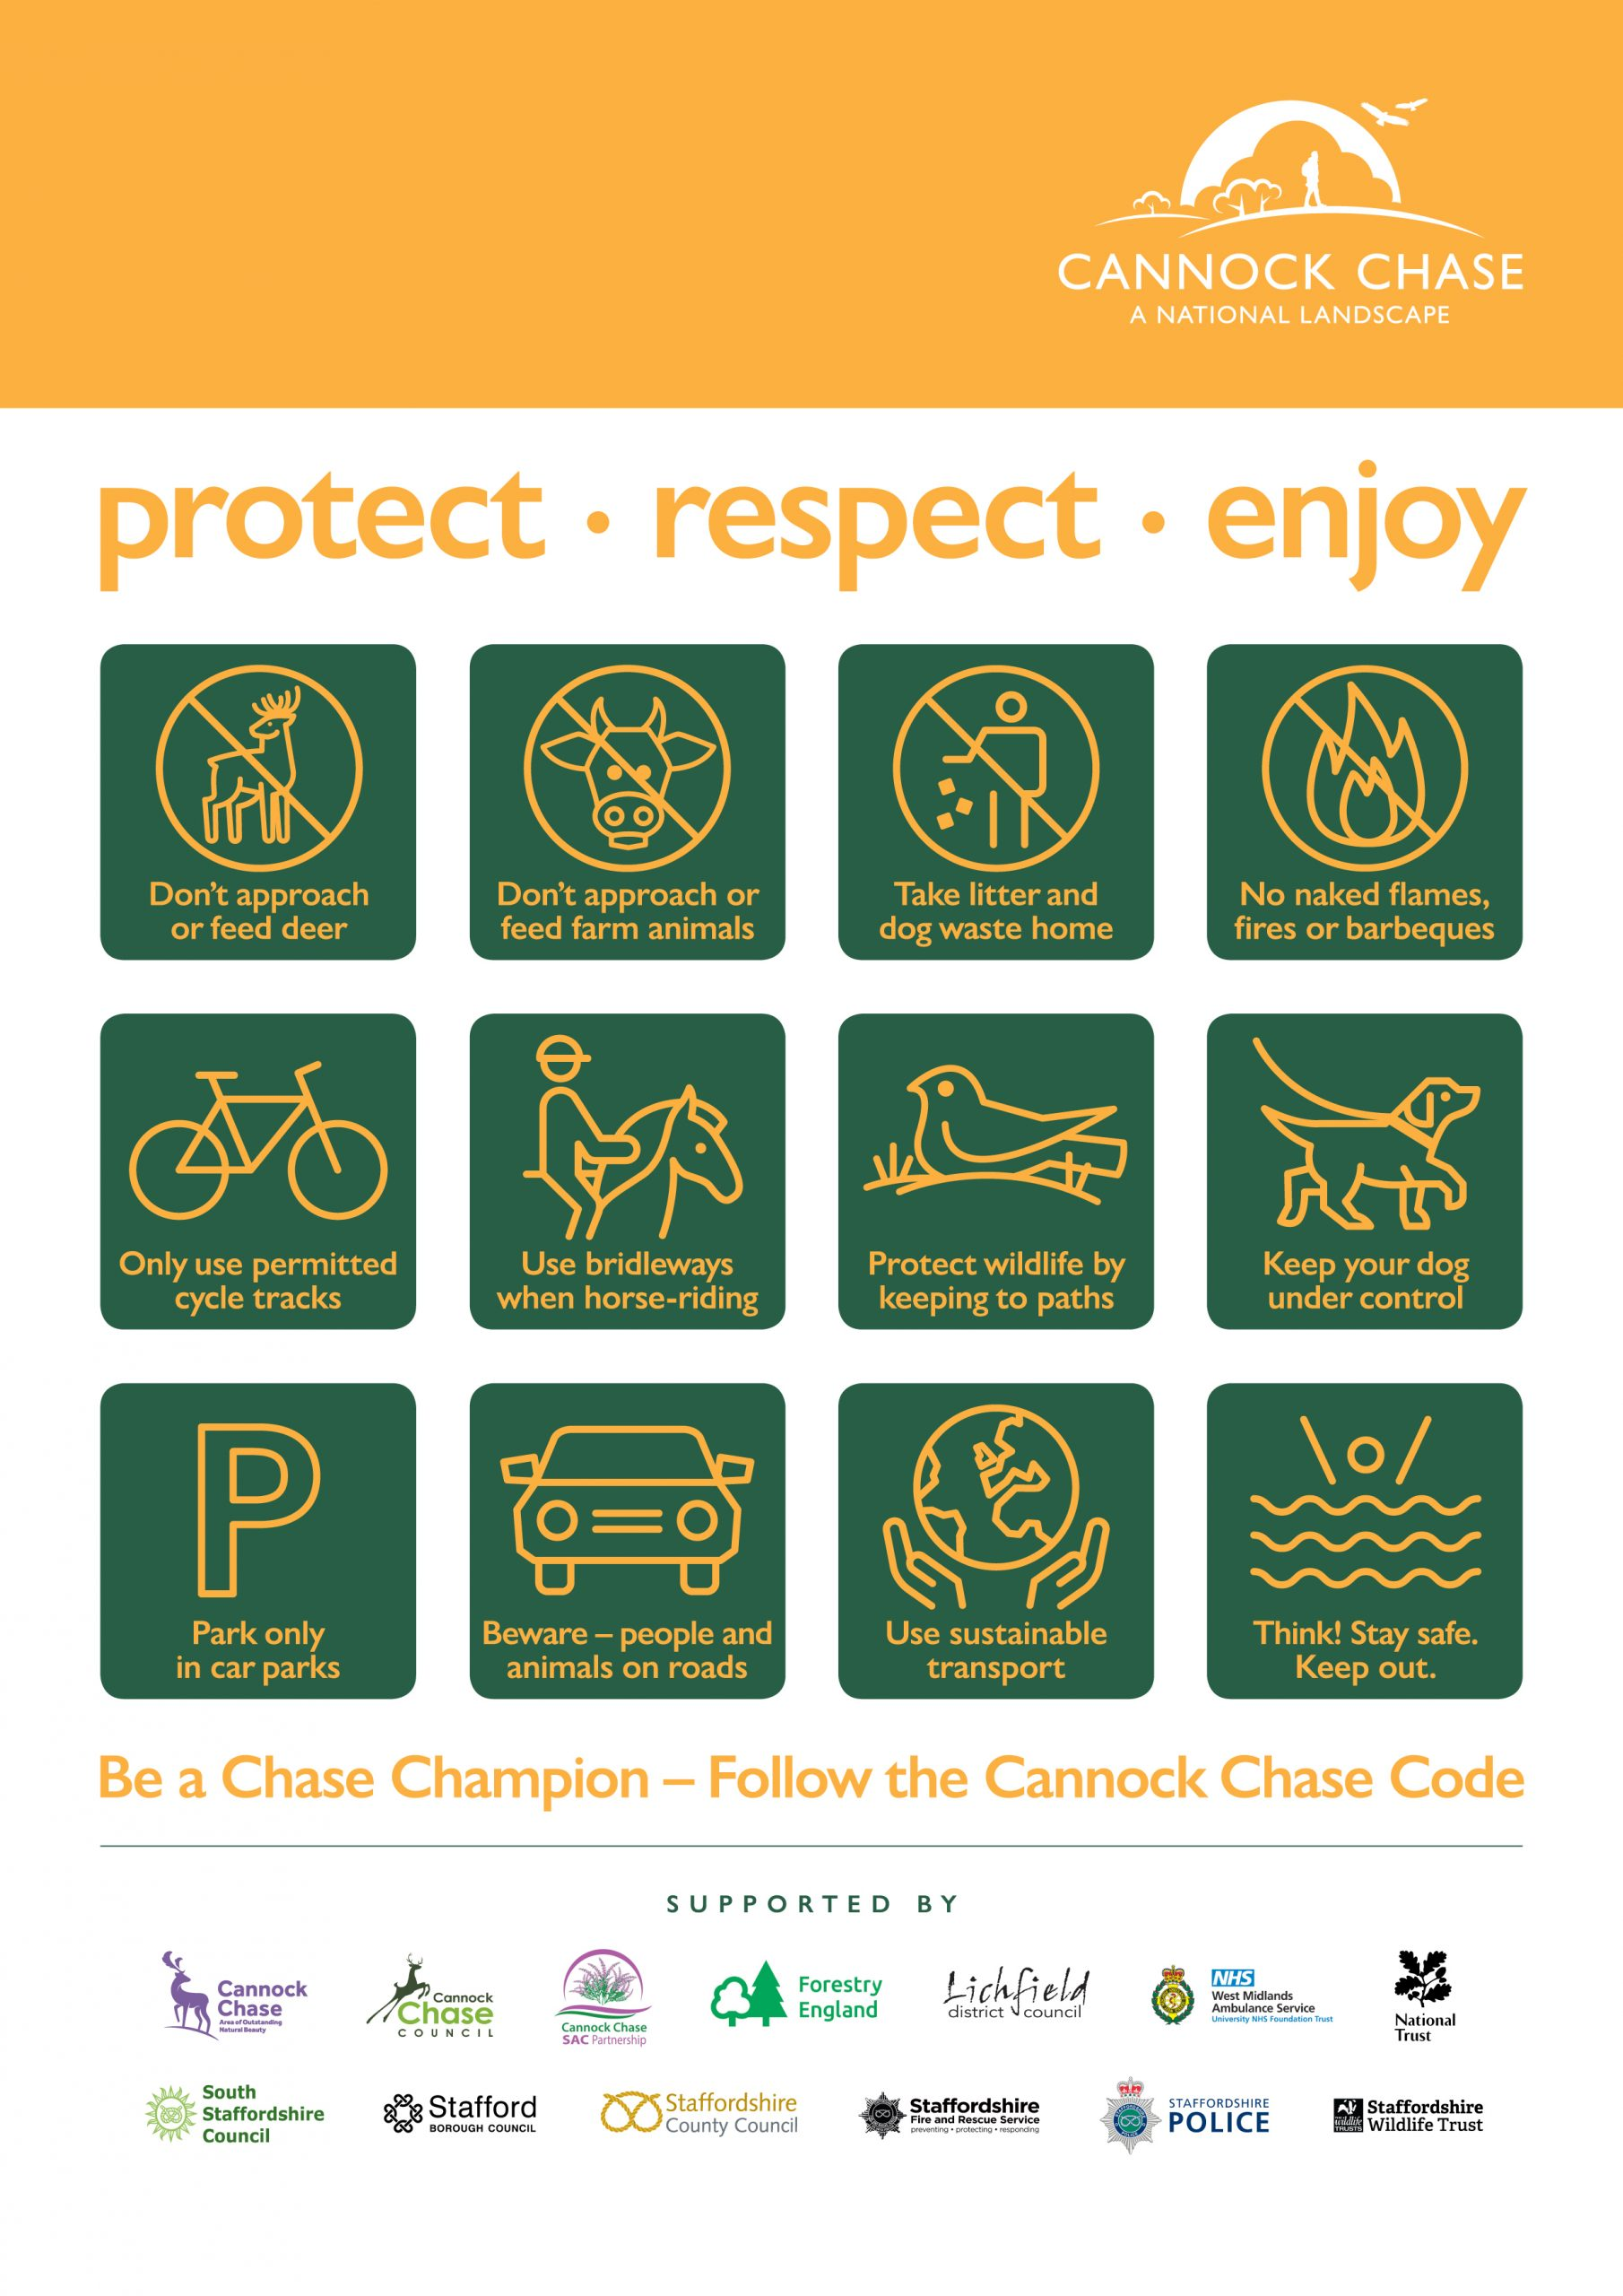 Follow the code and help to protect Cannock Chase